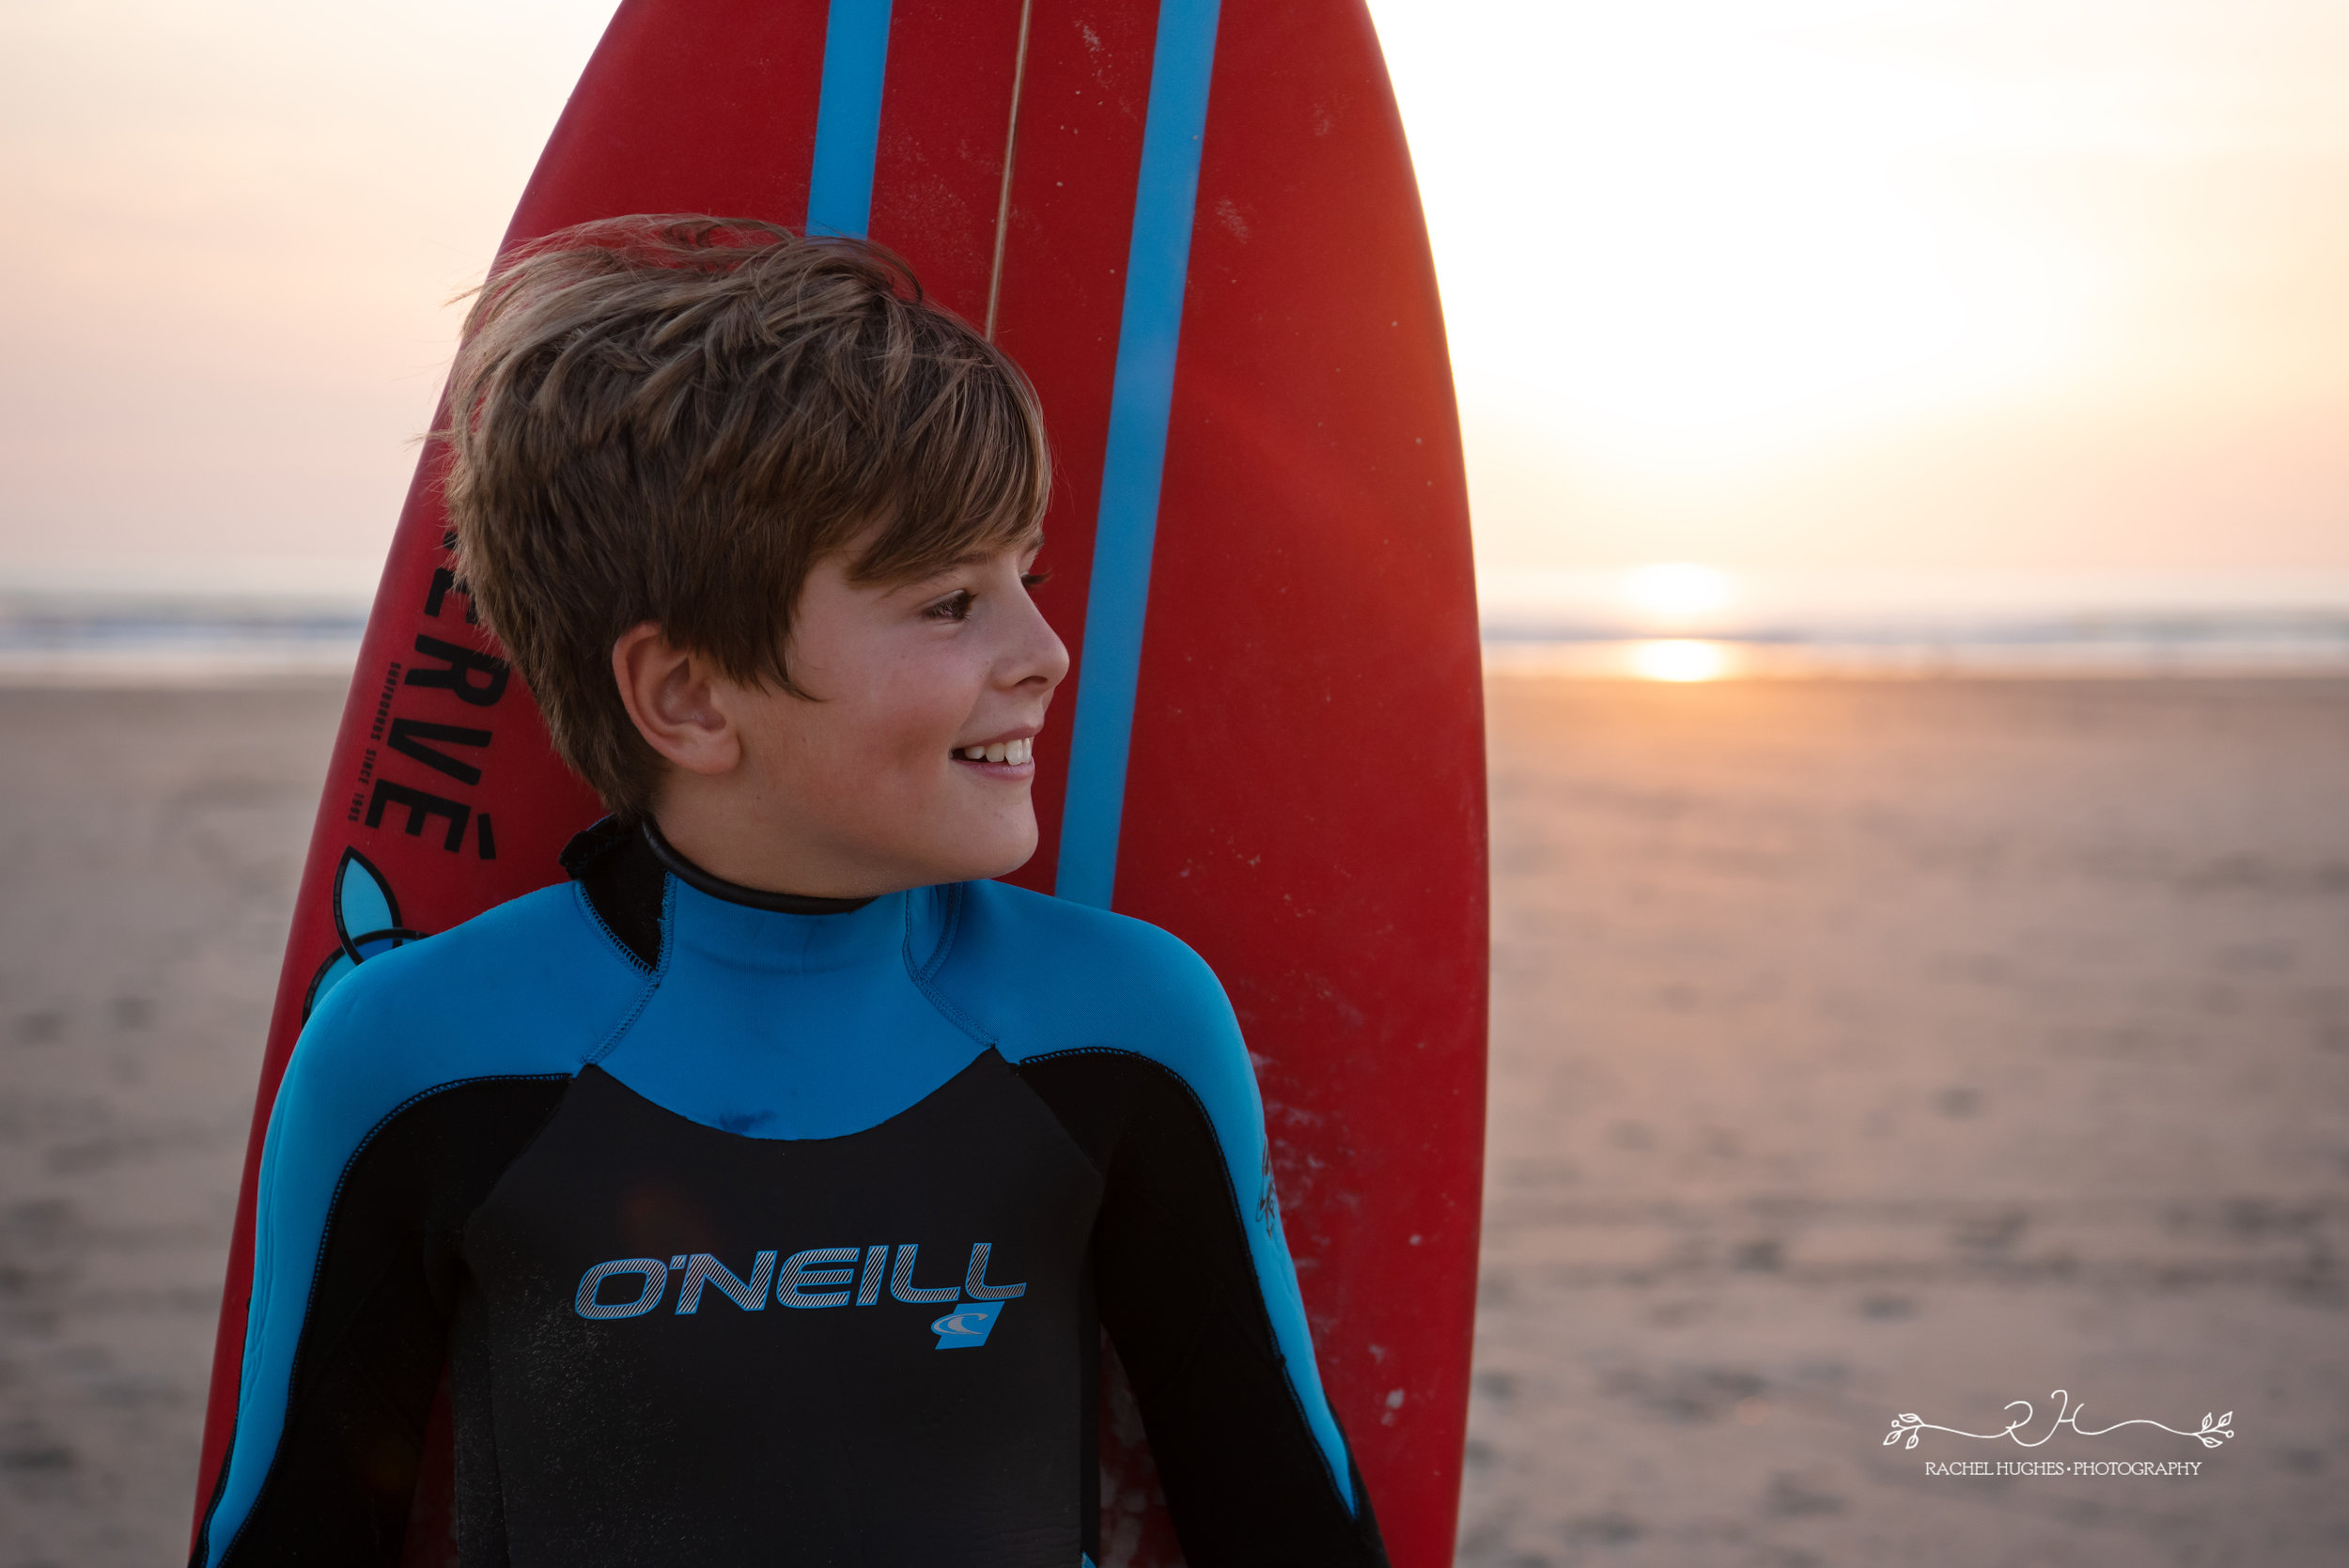 Jersey photographer - boy with surfboard on back